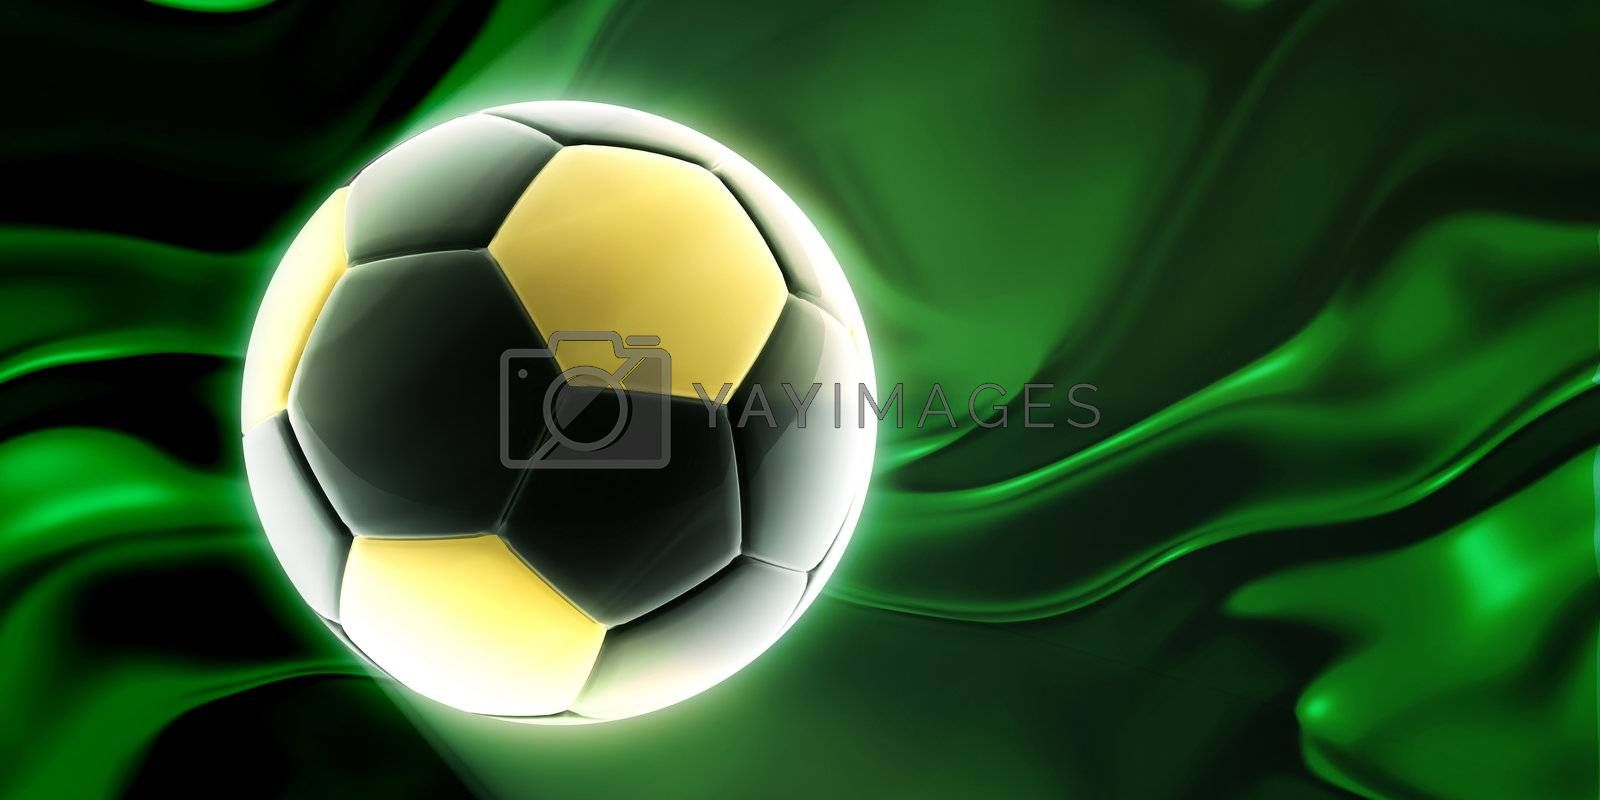 Flag of Libya, national country symbol illustration wavy fabric sports soccer football